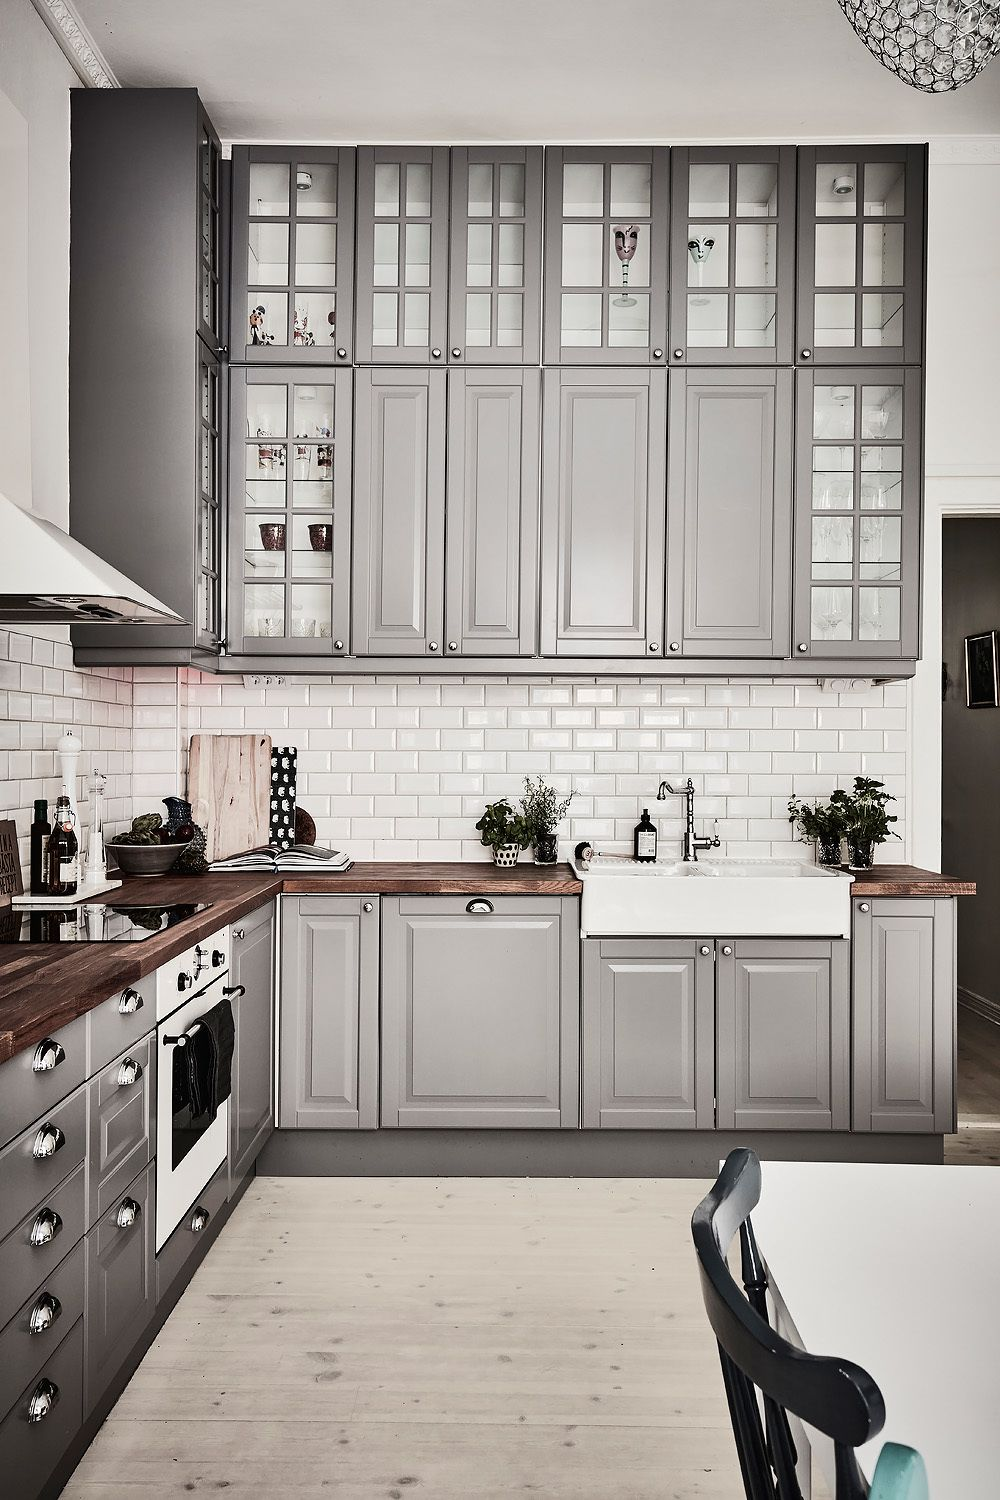 Inspiring Kitchens You Won't Believe are IKEA in 2018 | Decorating on ikea kitchen layout ideas, ikea small apartments ideas, small kitchen design ideas, ikea small bedroom design ideas, ikea small bathroom decorating ideas, ikea small kitchen appliances, ikea kitchen backsplash ideas, for small kitchens kitchen ideas, ikea kitchen lighting ideas, ikea small kitchen storage, ikea small kitchen sinks, ikea small kitchen design, ikea small closet organization ideas, ikea small kitchen inspiration, ikea kitchen design ideas, ikea small kitchen islands, ikea l-shaped kitchen ideas, ikea small storage ideas, ikea bathroom remodel,